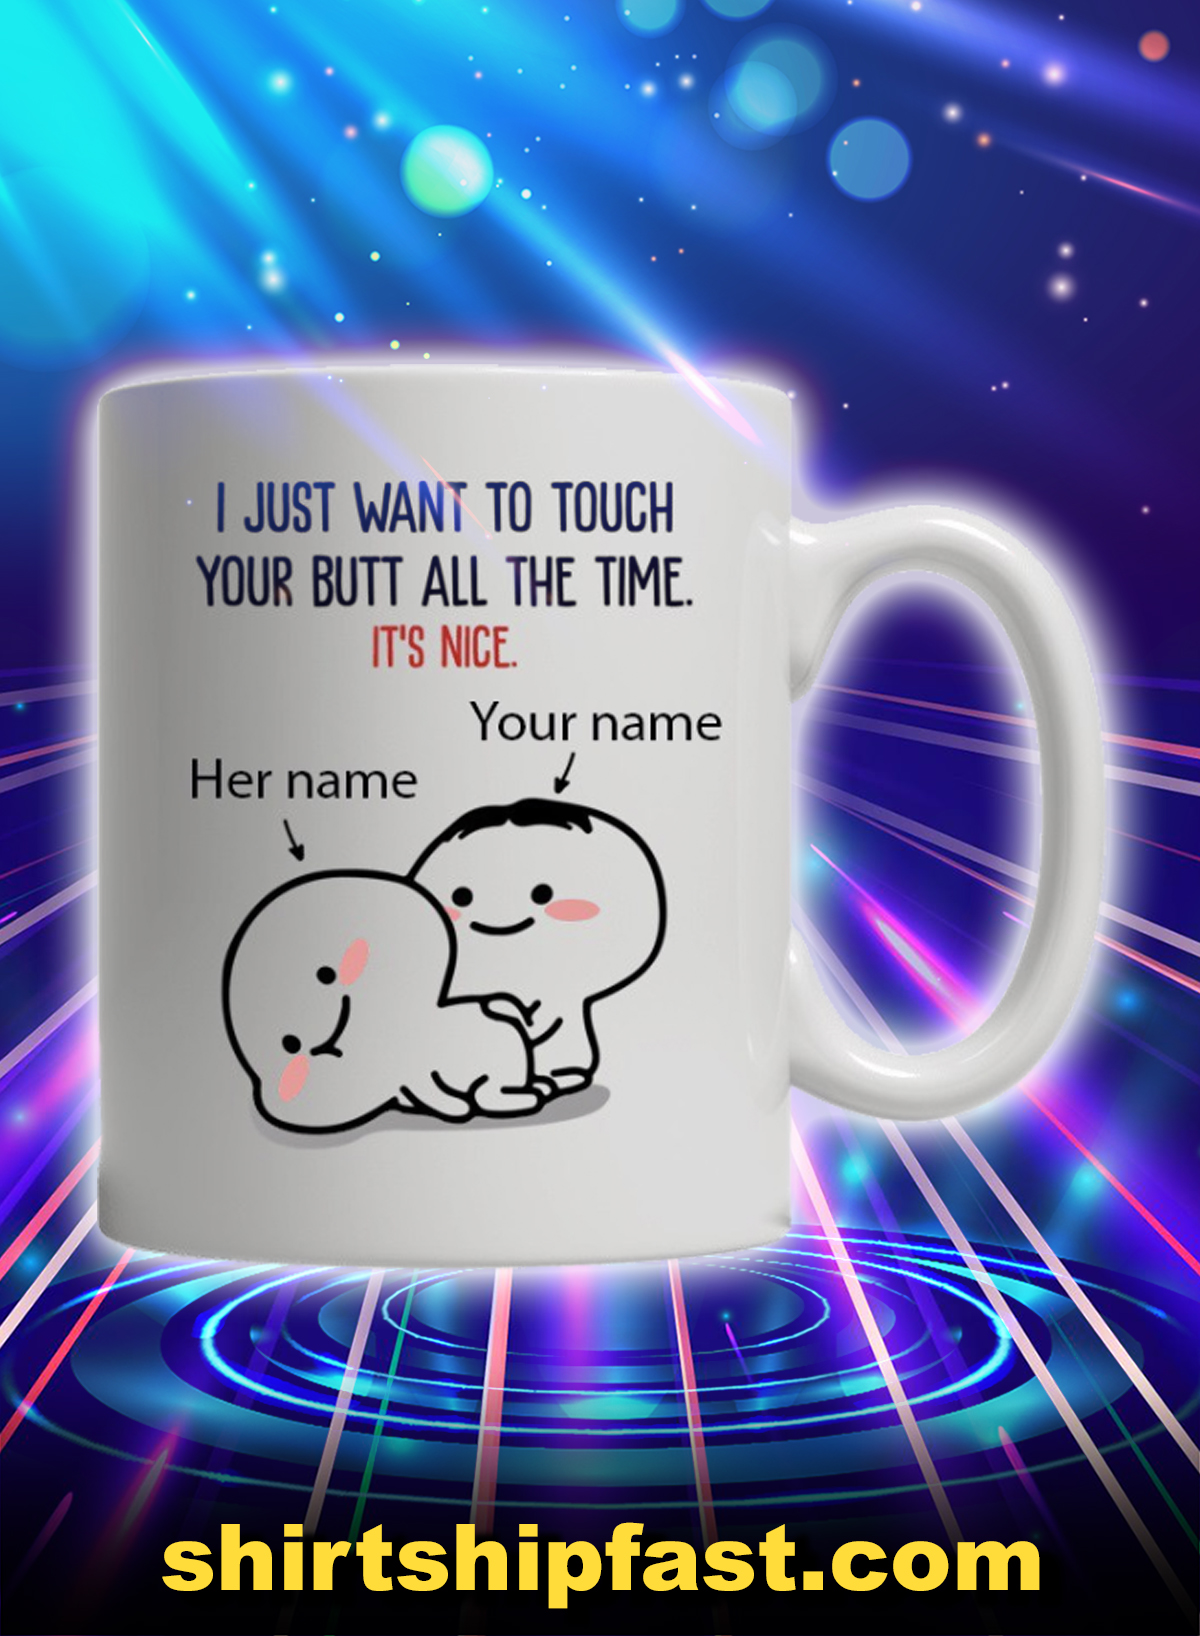 Customize I just want to touch your butt all the time mug